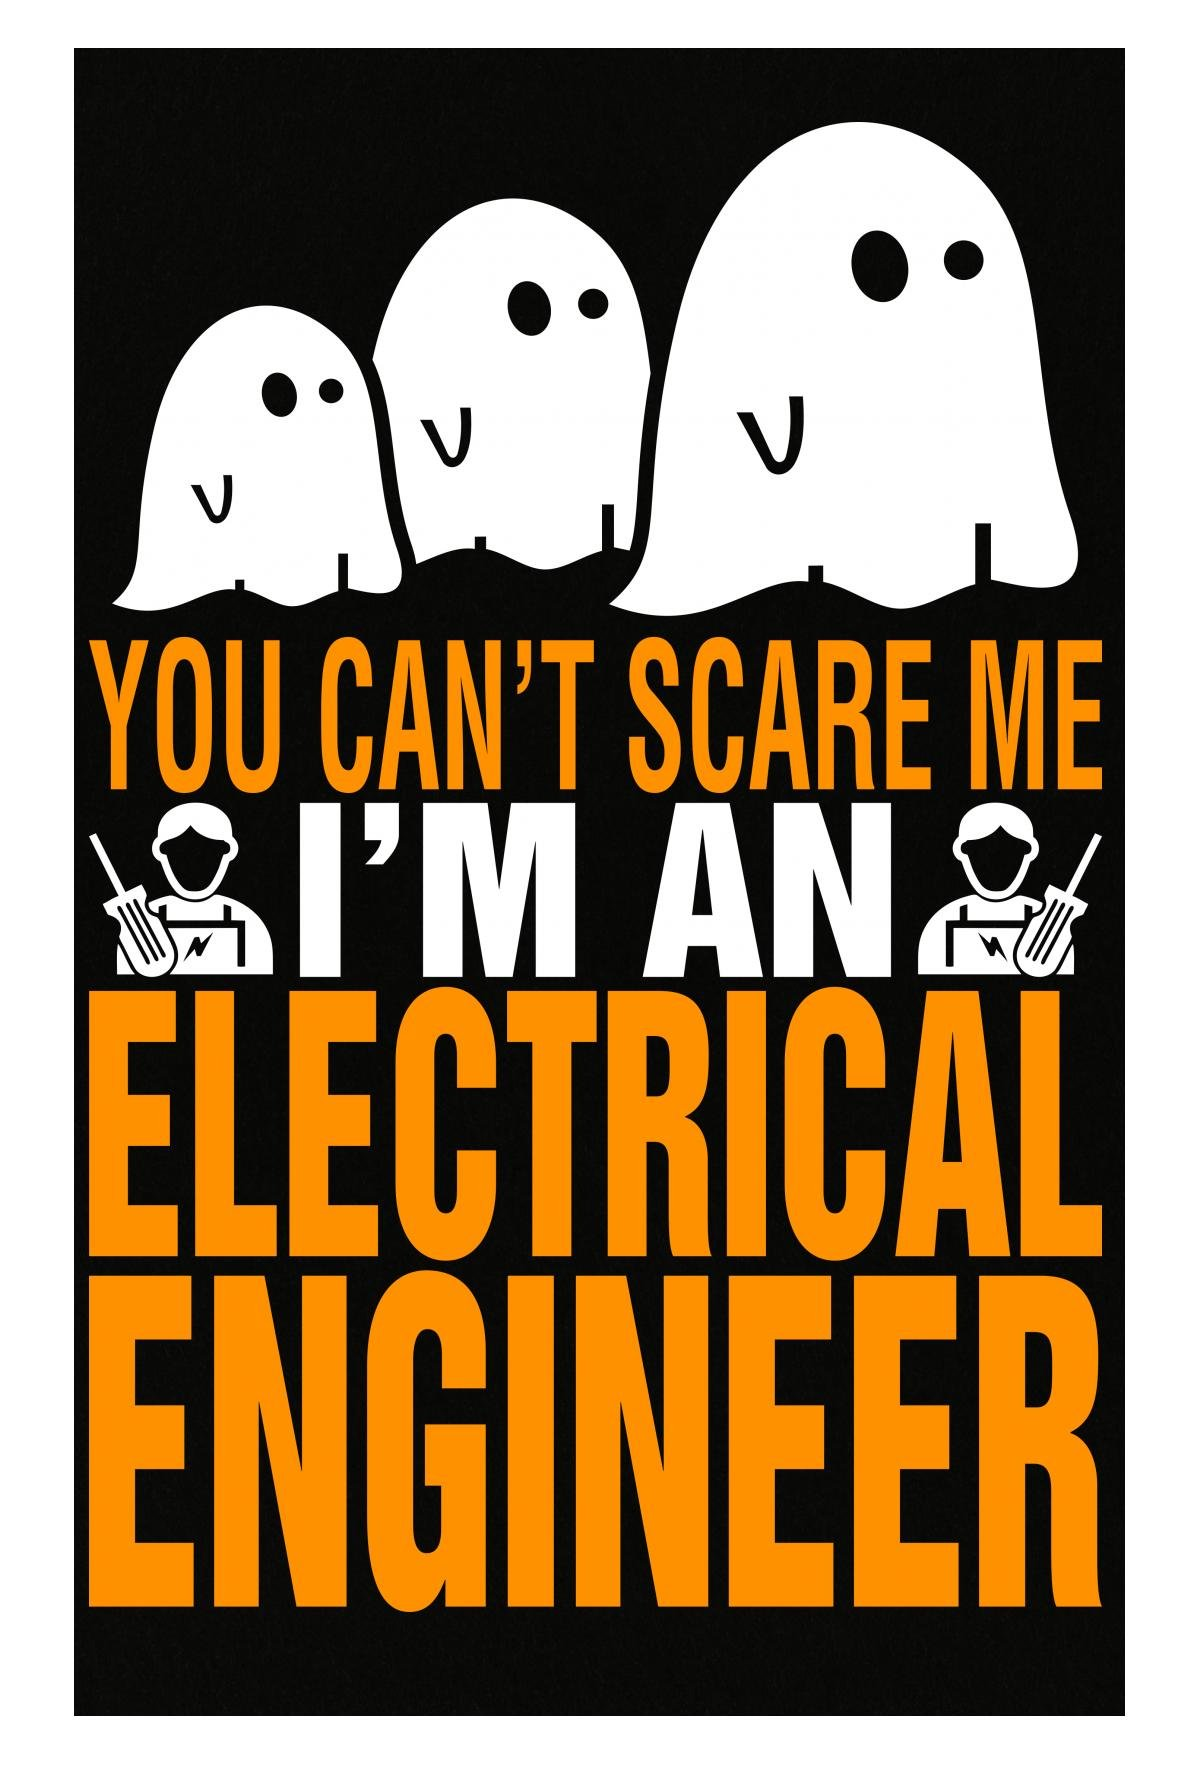 AttireOutfit You Cant Scare Me I Am An Electrical Engineer Halloween - Poster